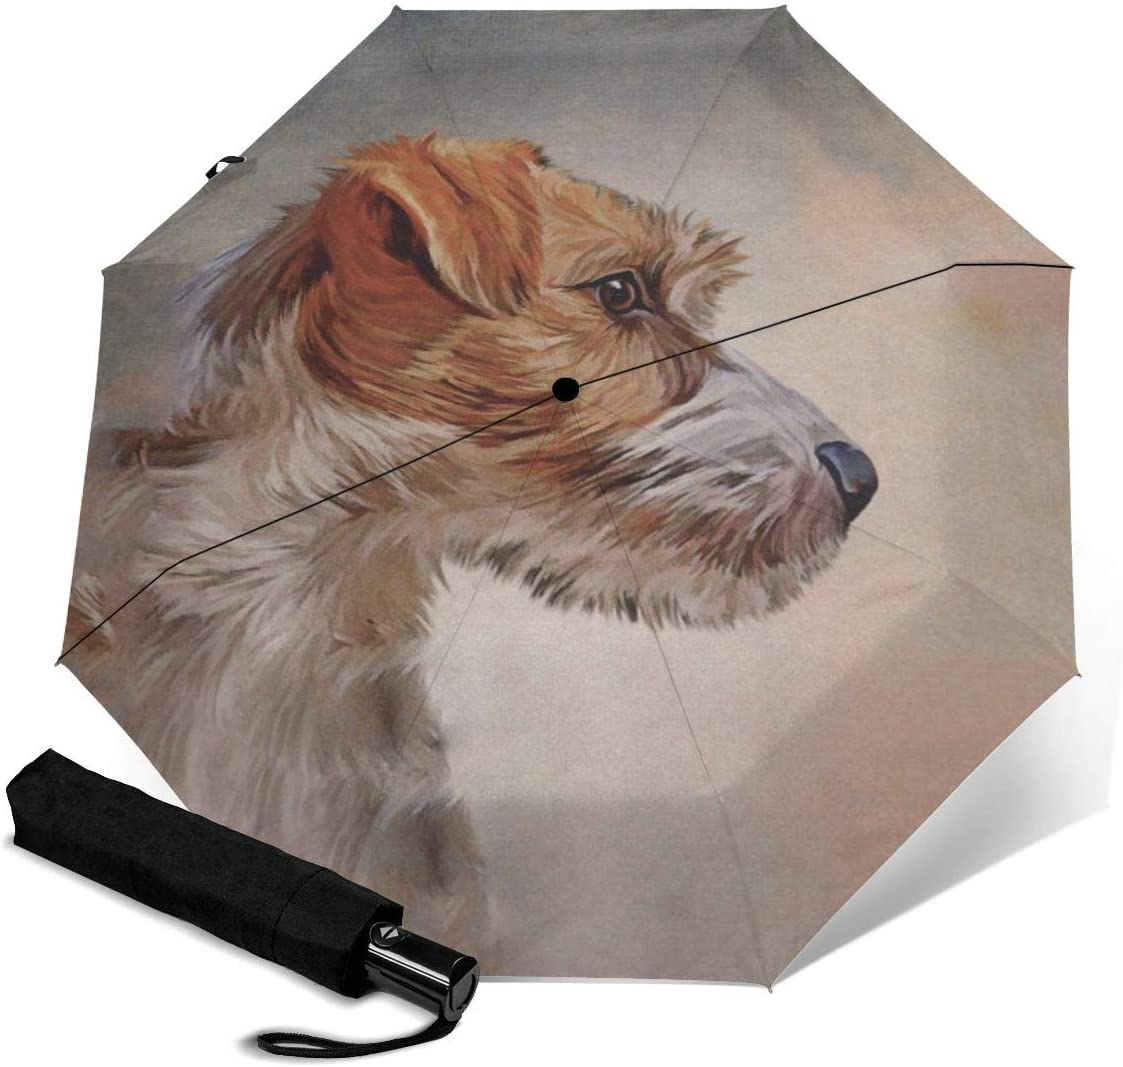 Jack Russell Terrier Dog Automatic Open Folding Compact Travel Umbrellas For Women